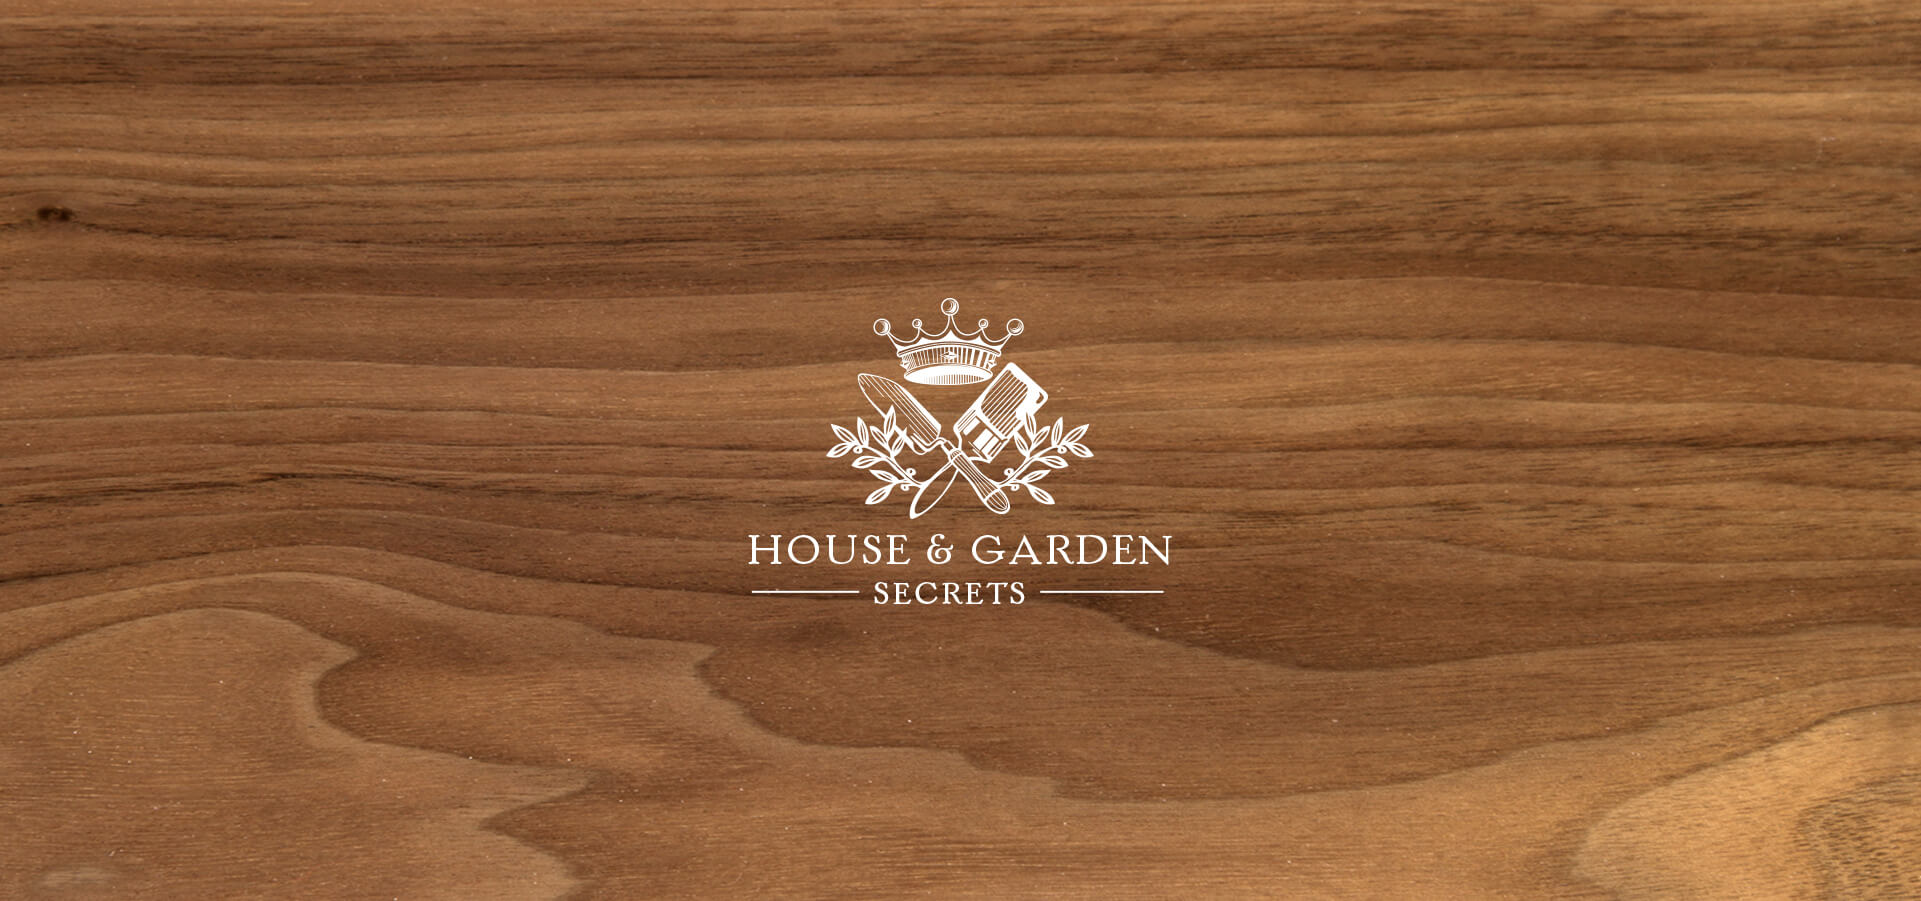 House and garden service company logo design and identity